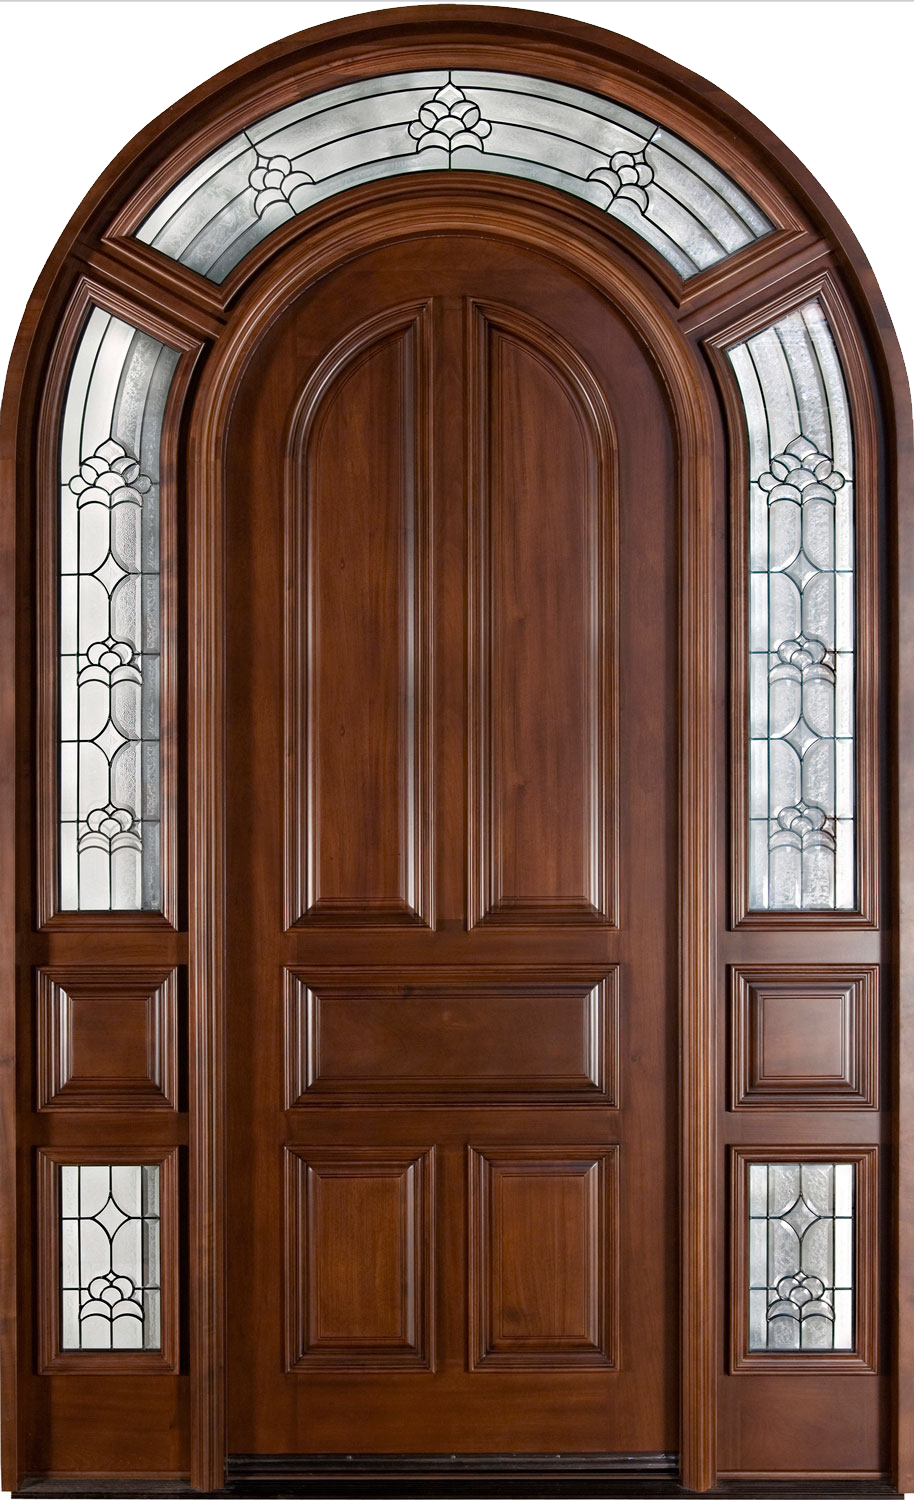 Pin by Beverly Scangra on These are great doors in 2019.